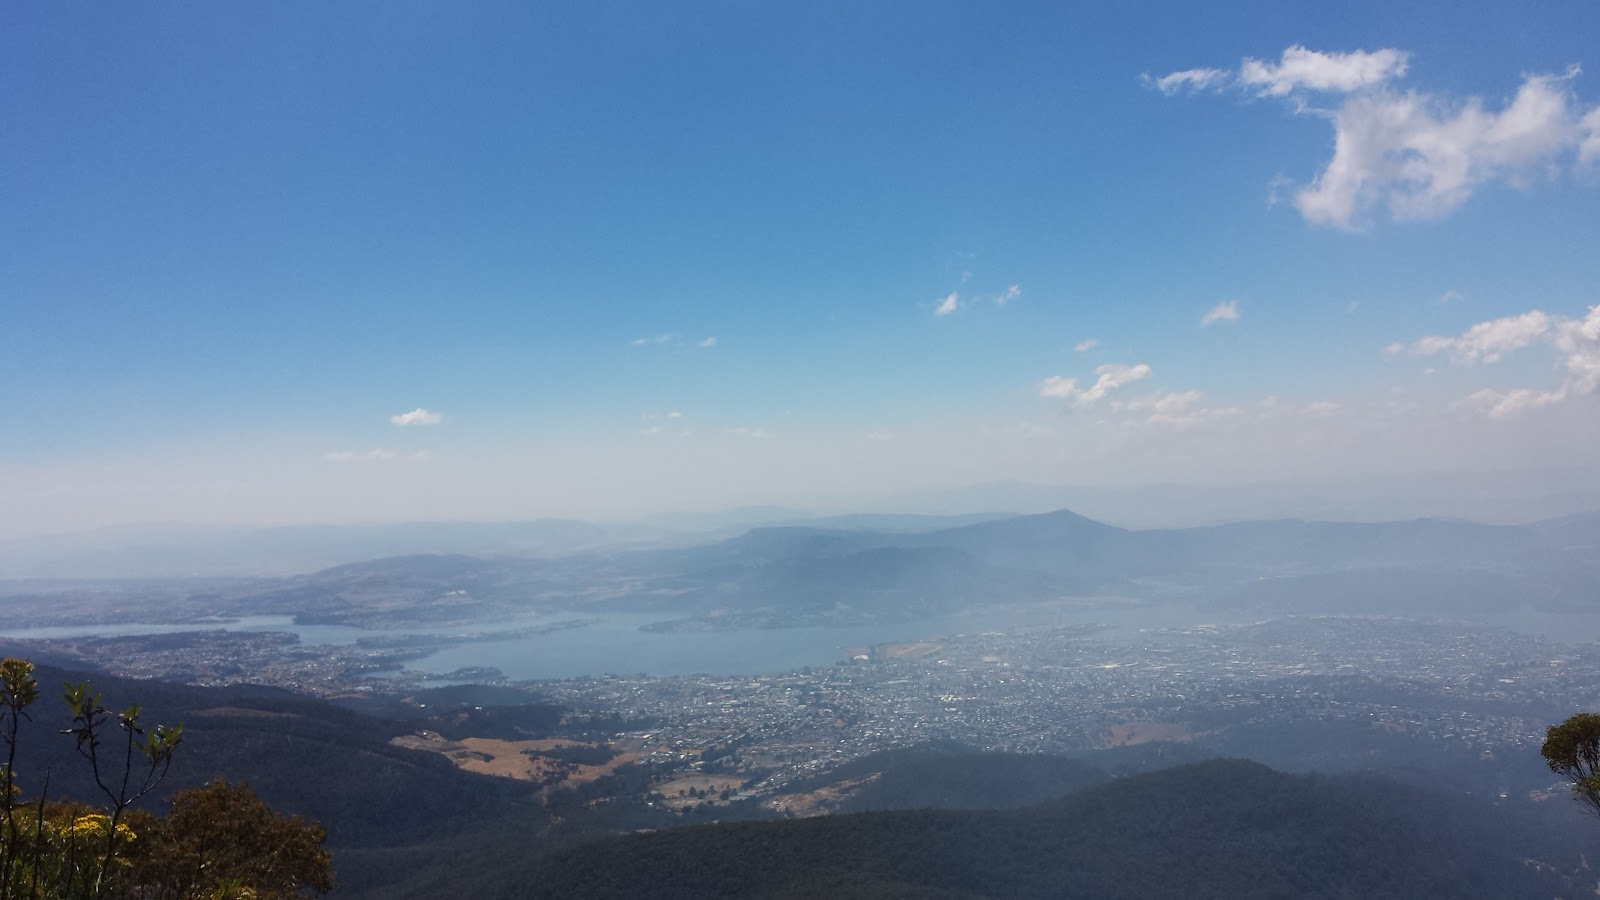 Bicycle ride Mt. Wellington - view of Hobart from top